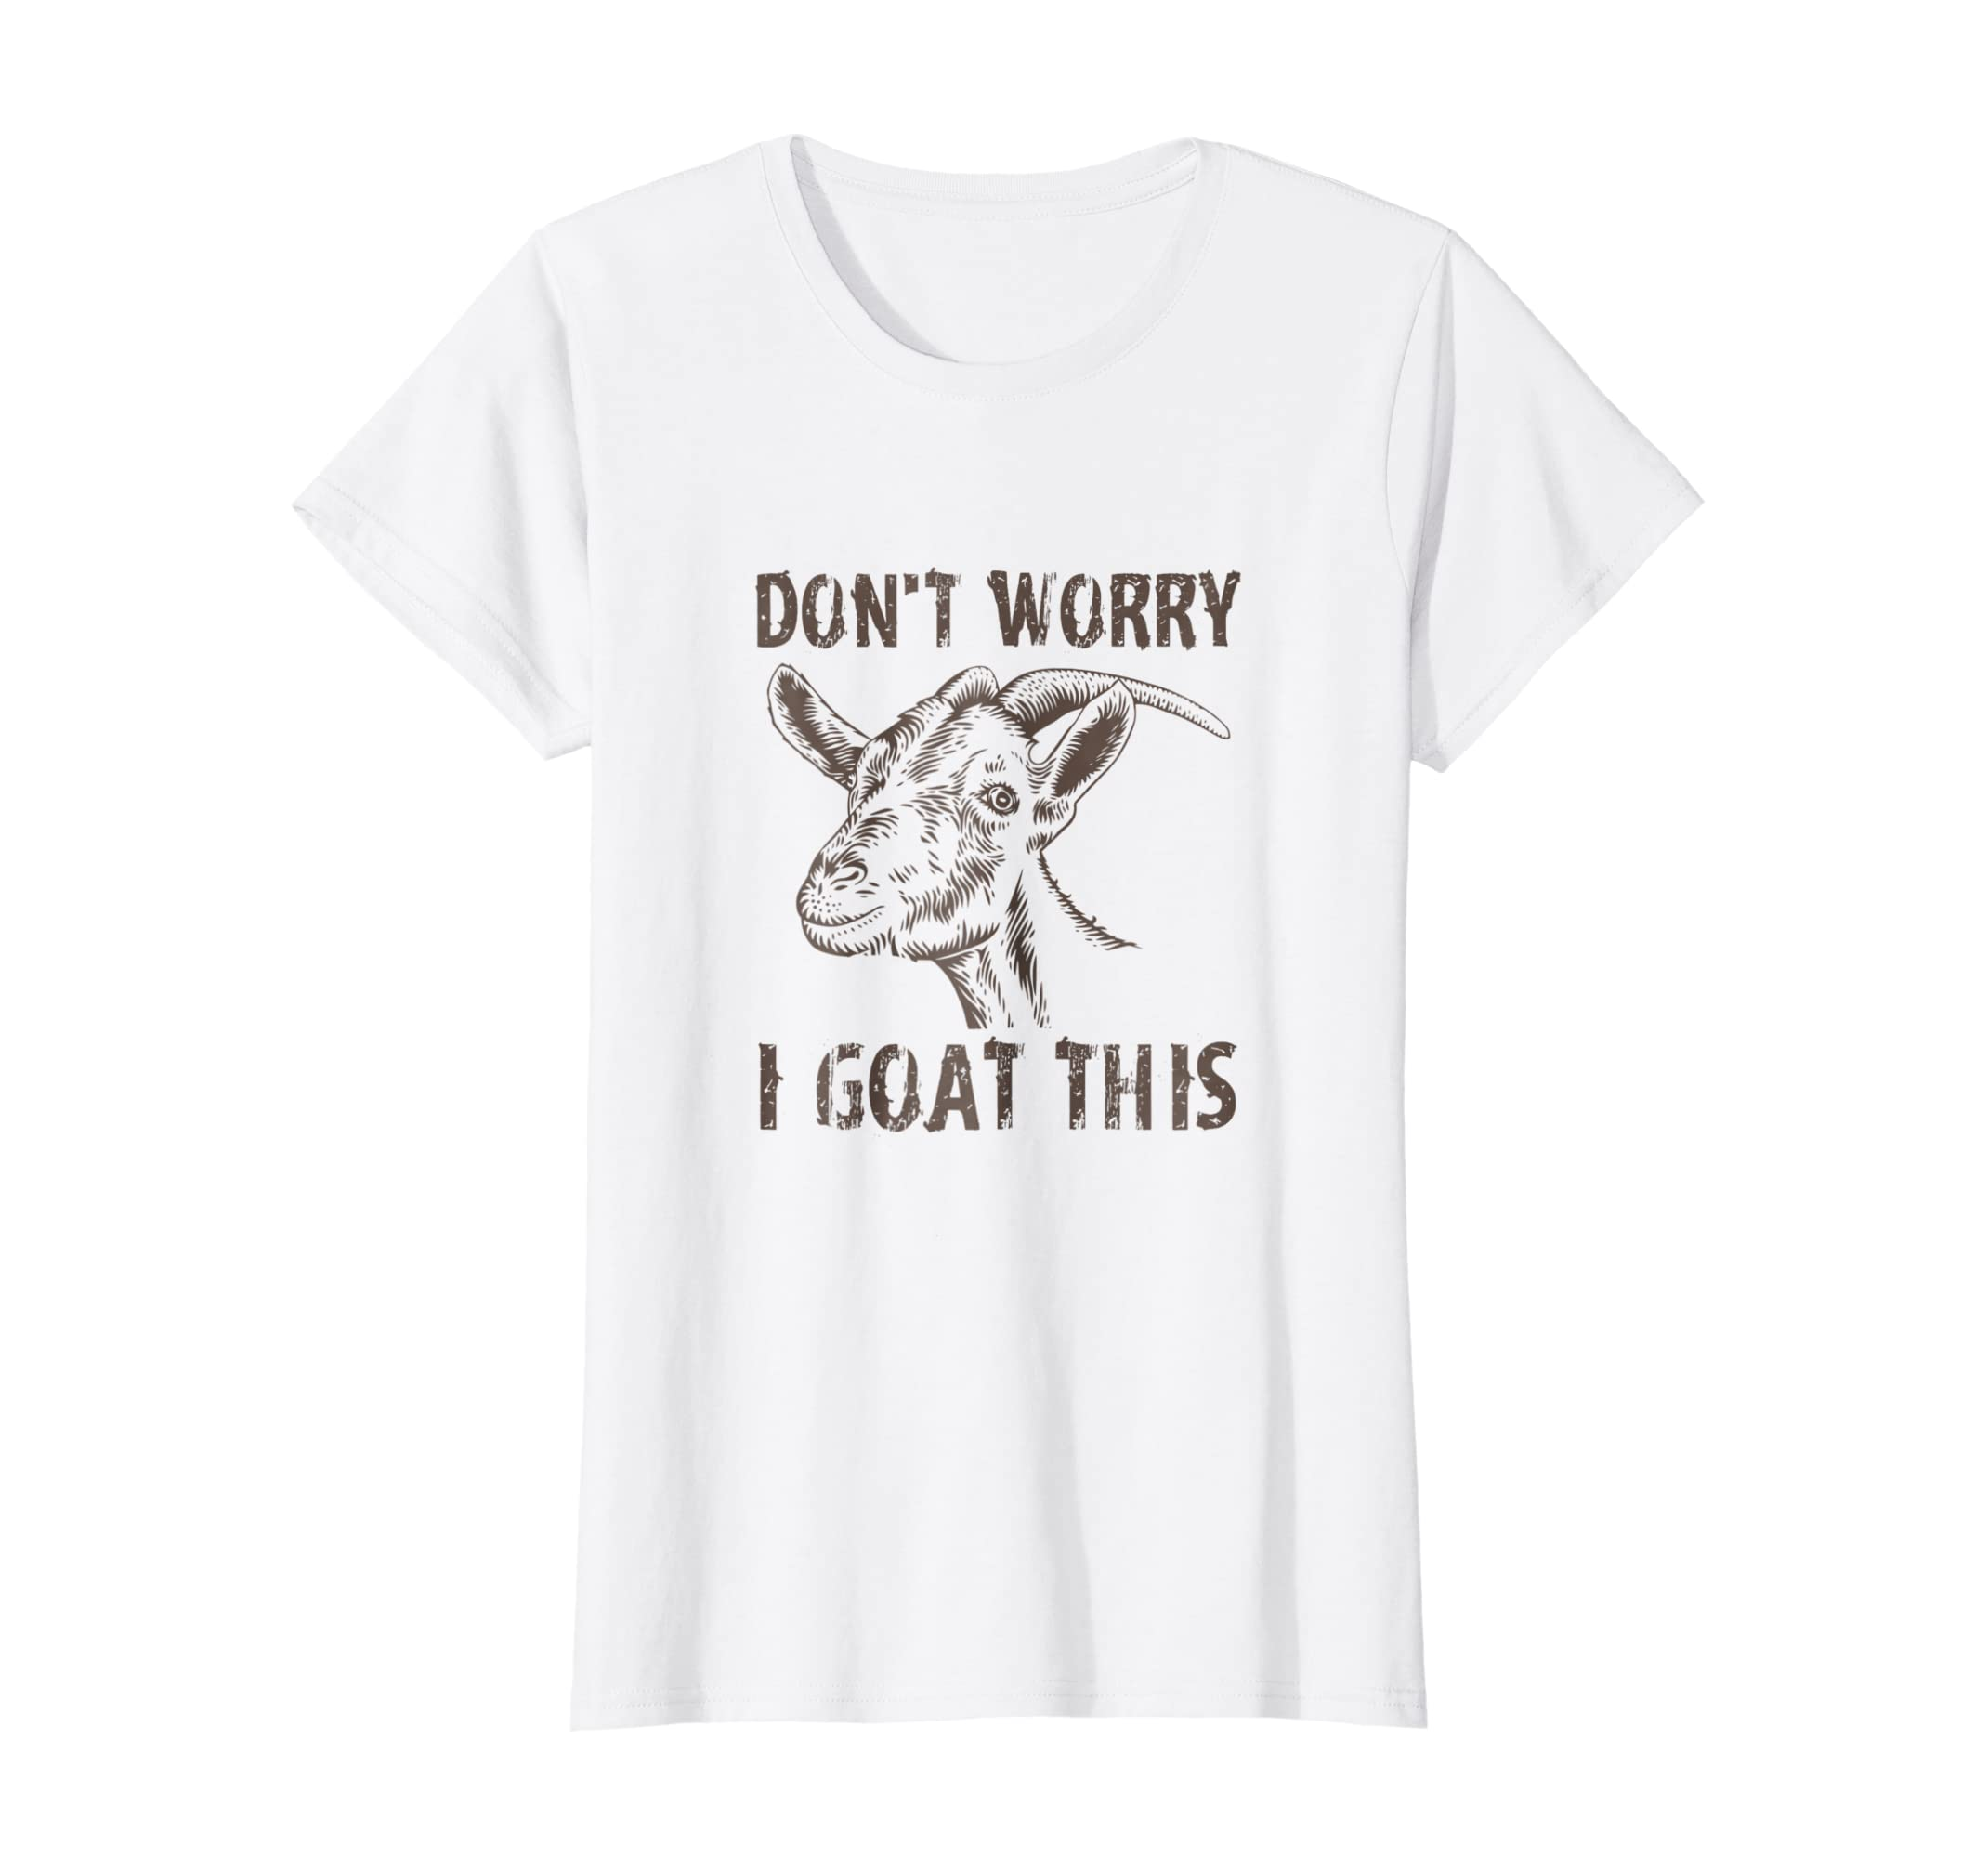 89cafd20d Funny Wordings On T Shirt - DREAMWORKS